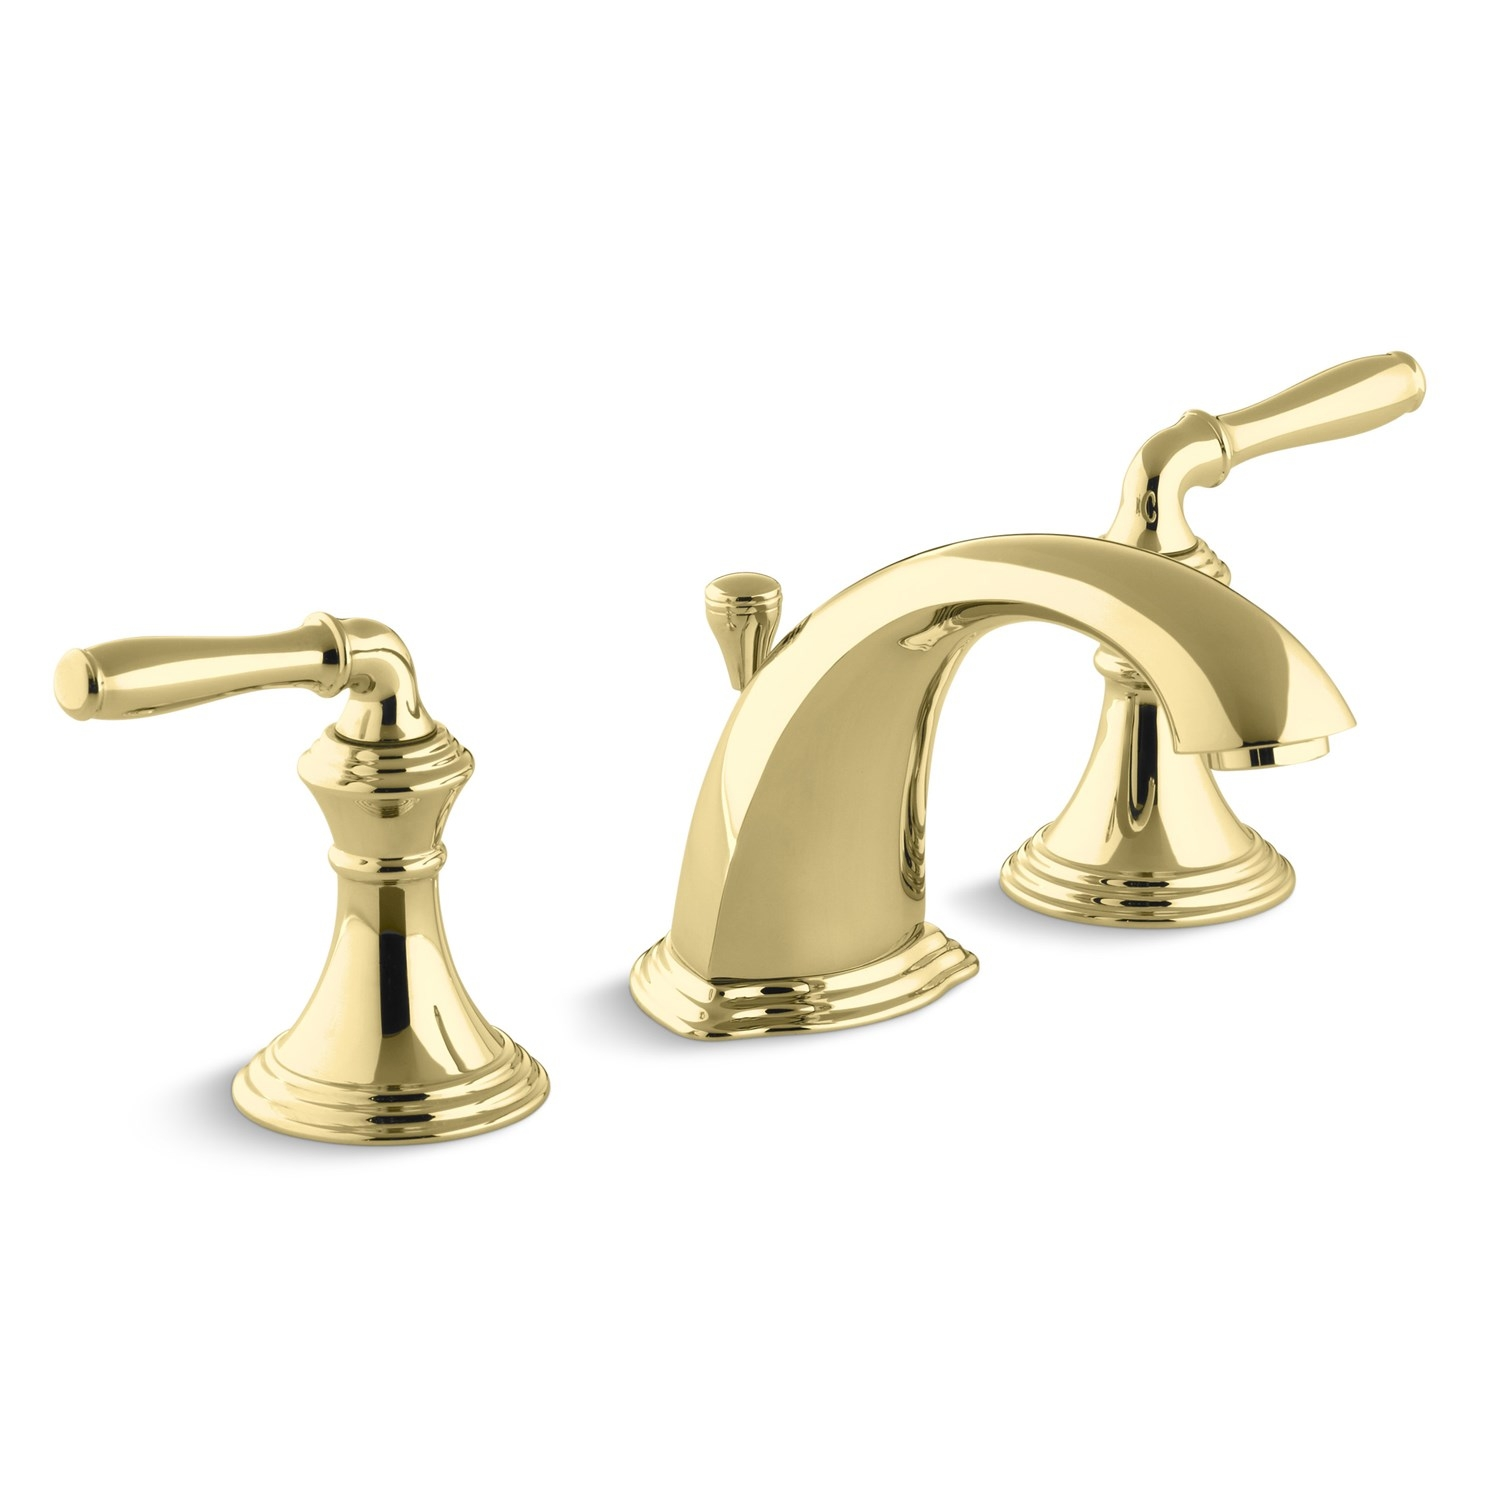 Ideas, most popular bathroom faucets homeclick intended for proportions 1500 x 1500  .